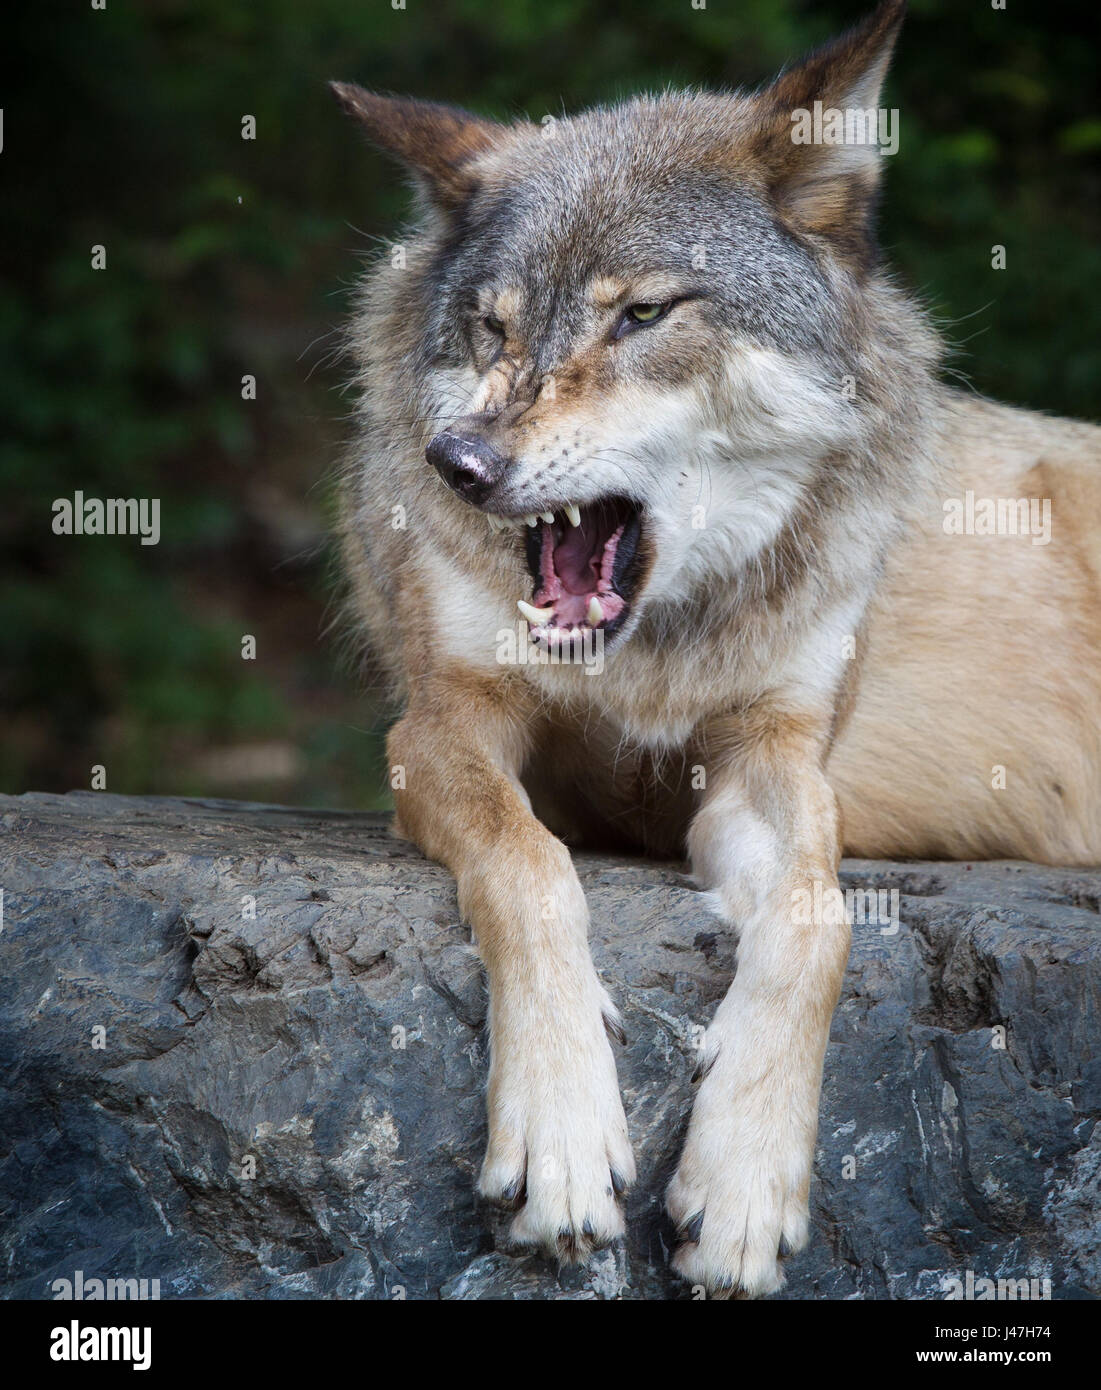 Gray wolf snarls with mouth open - Stock Image